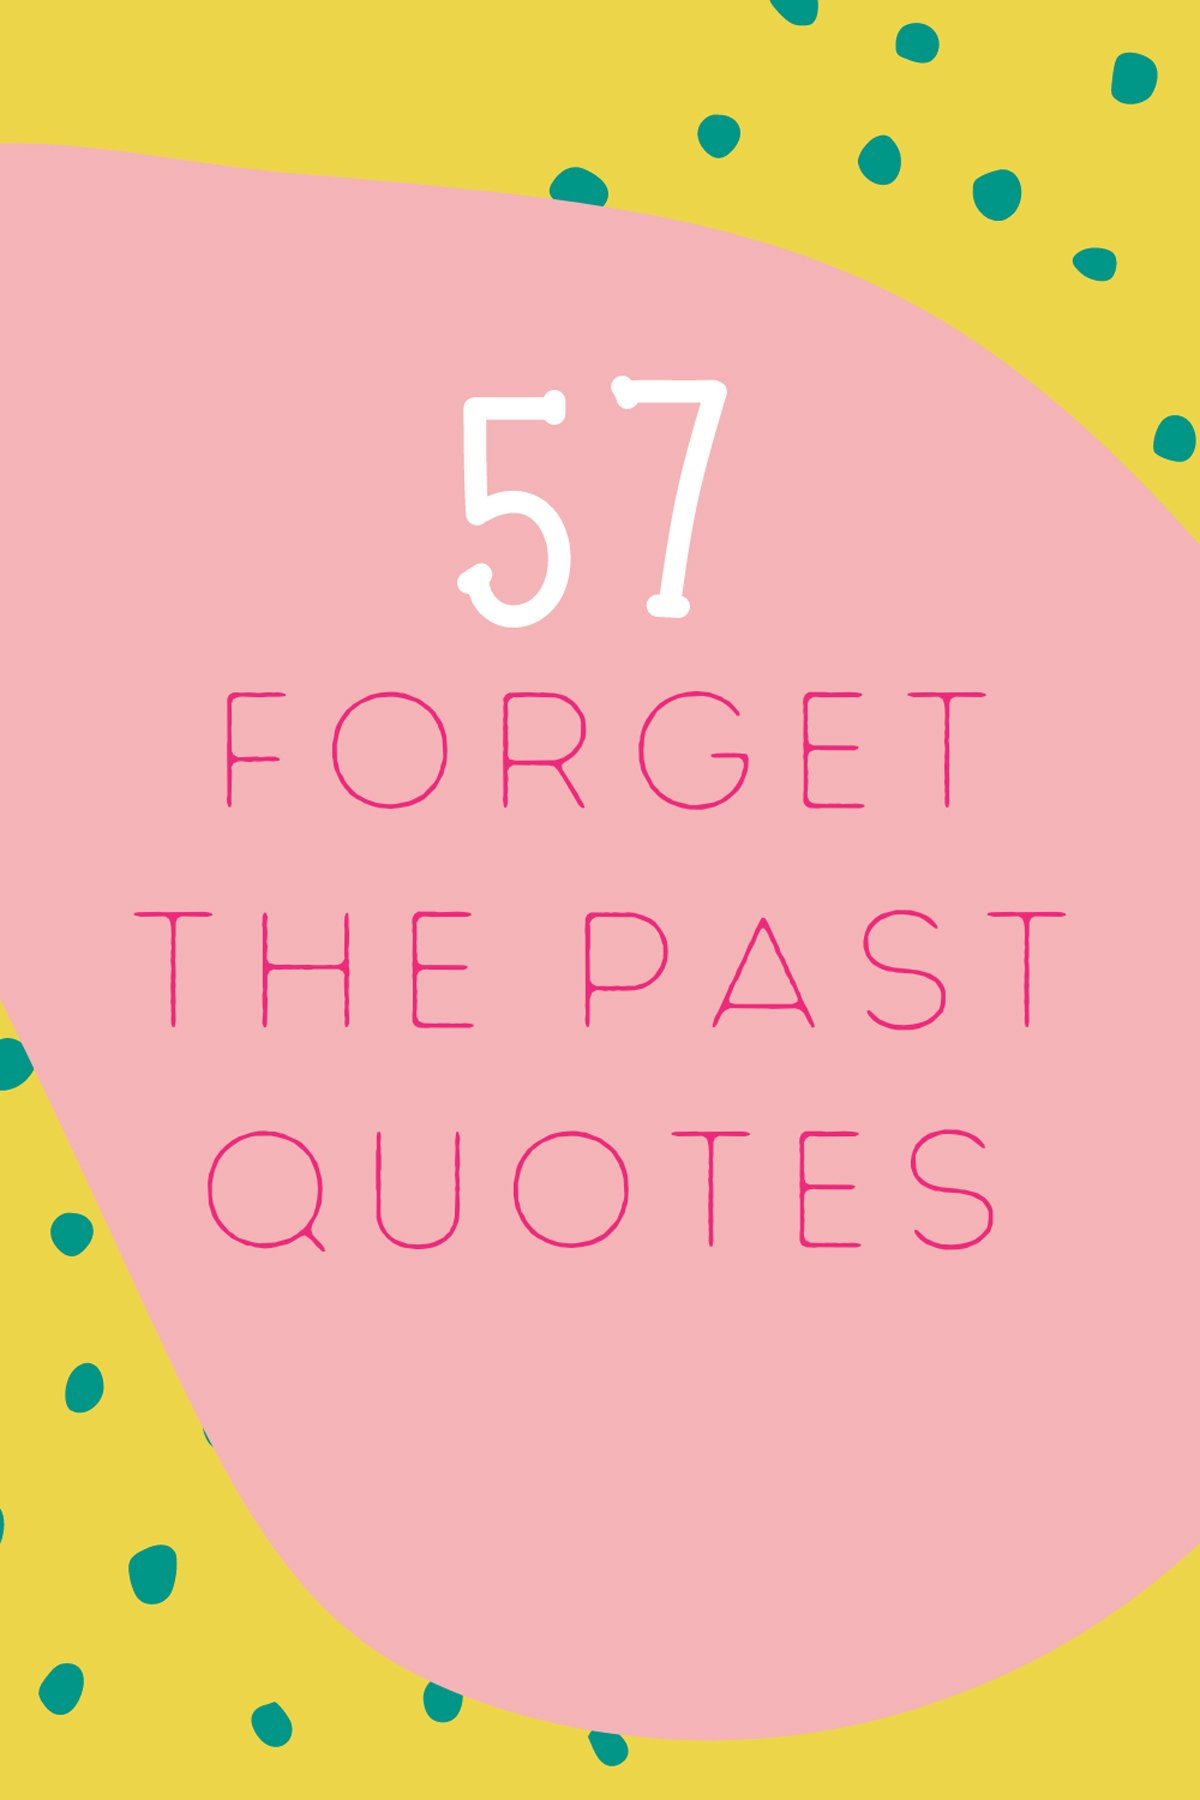 Forget The Past Quotes and Moving On